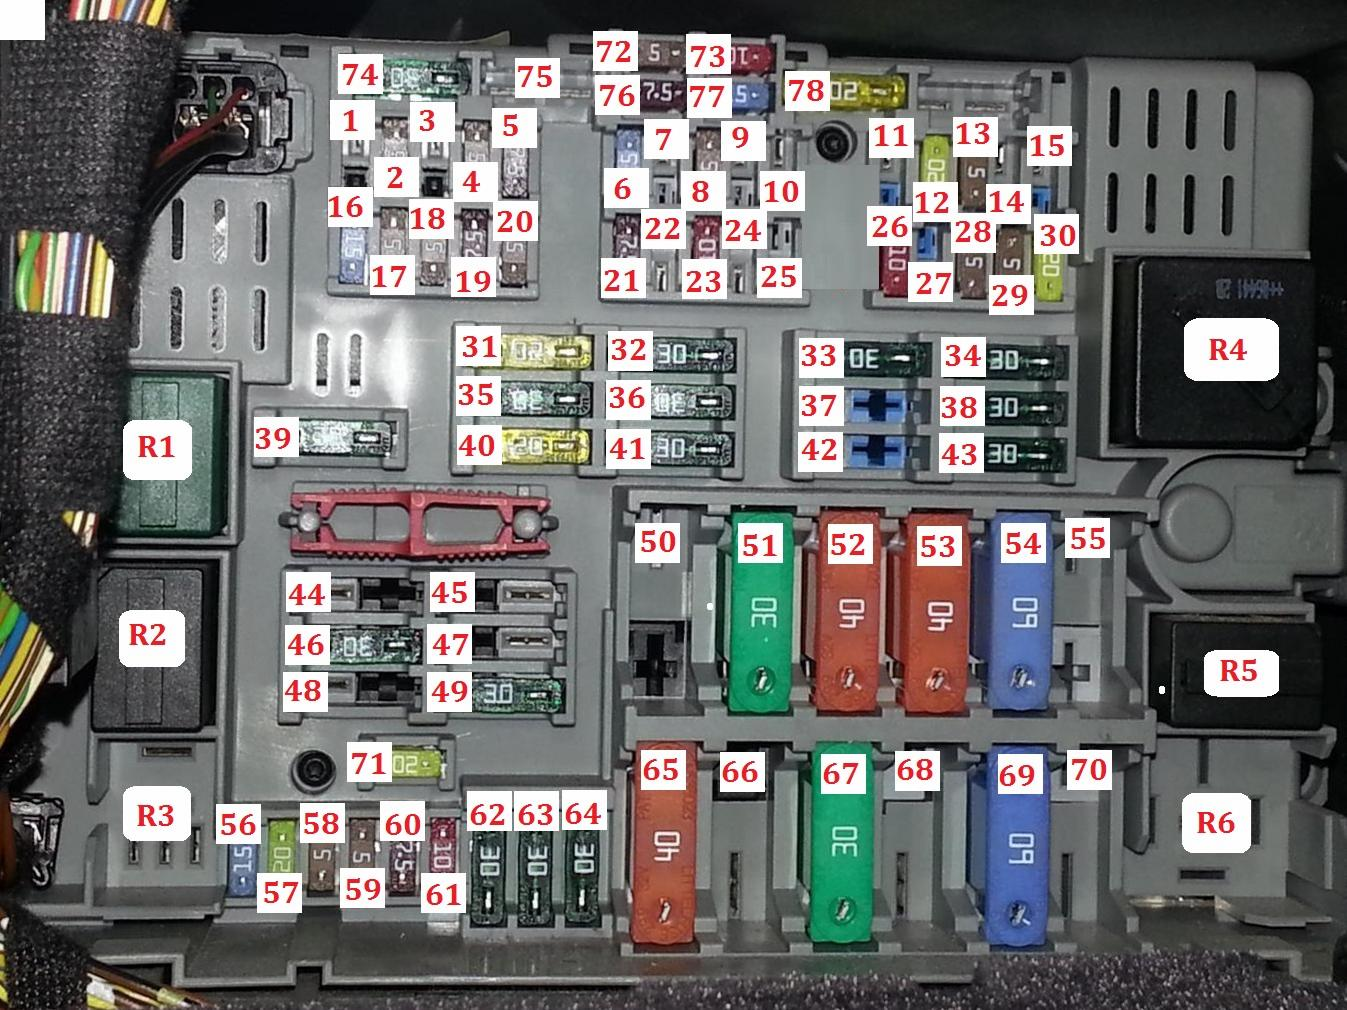 bmw 1 series fuse box wiring html with Fuse Box Diagram Bmw 3 E90 on 2006 Bmw 325i Fuse Box Location C7416376a9f7cf27 together with Marine Wiring Diagram Symbols besides Topic2619113 besides Fuses And Relay Chevrolet Silverado 1999 2007 as well Fuse Box Diagram Bmw 3 E90.